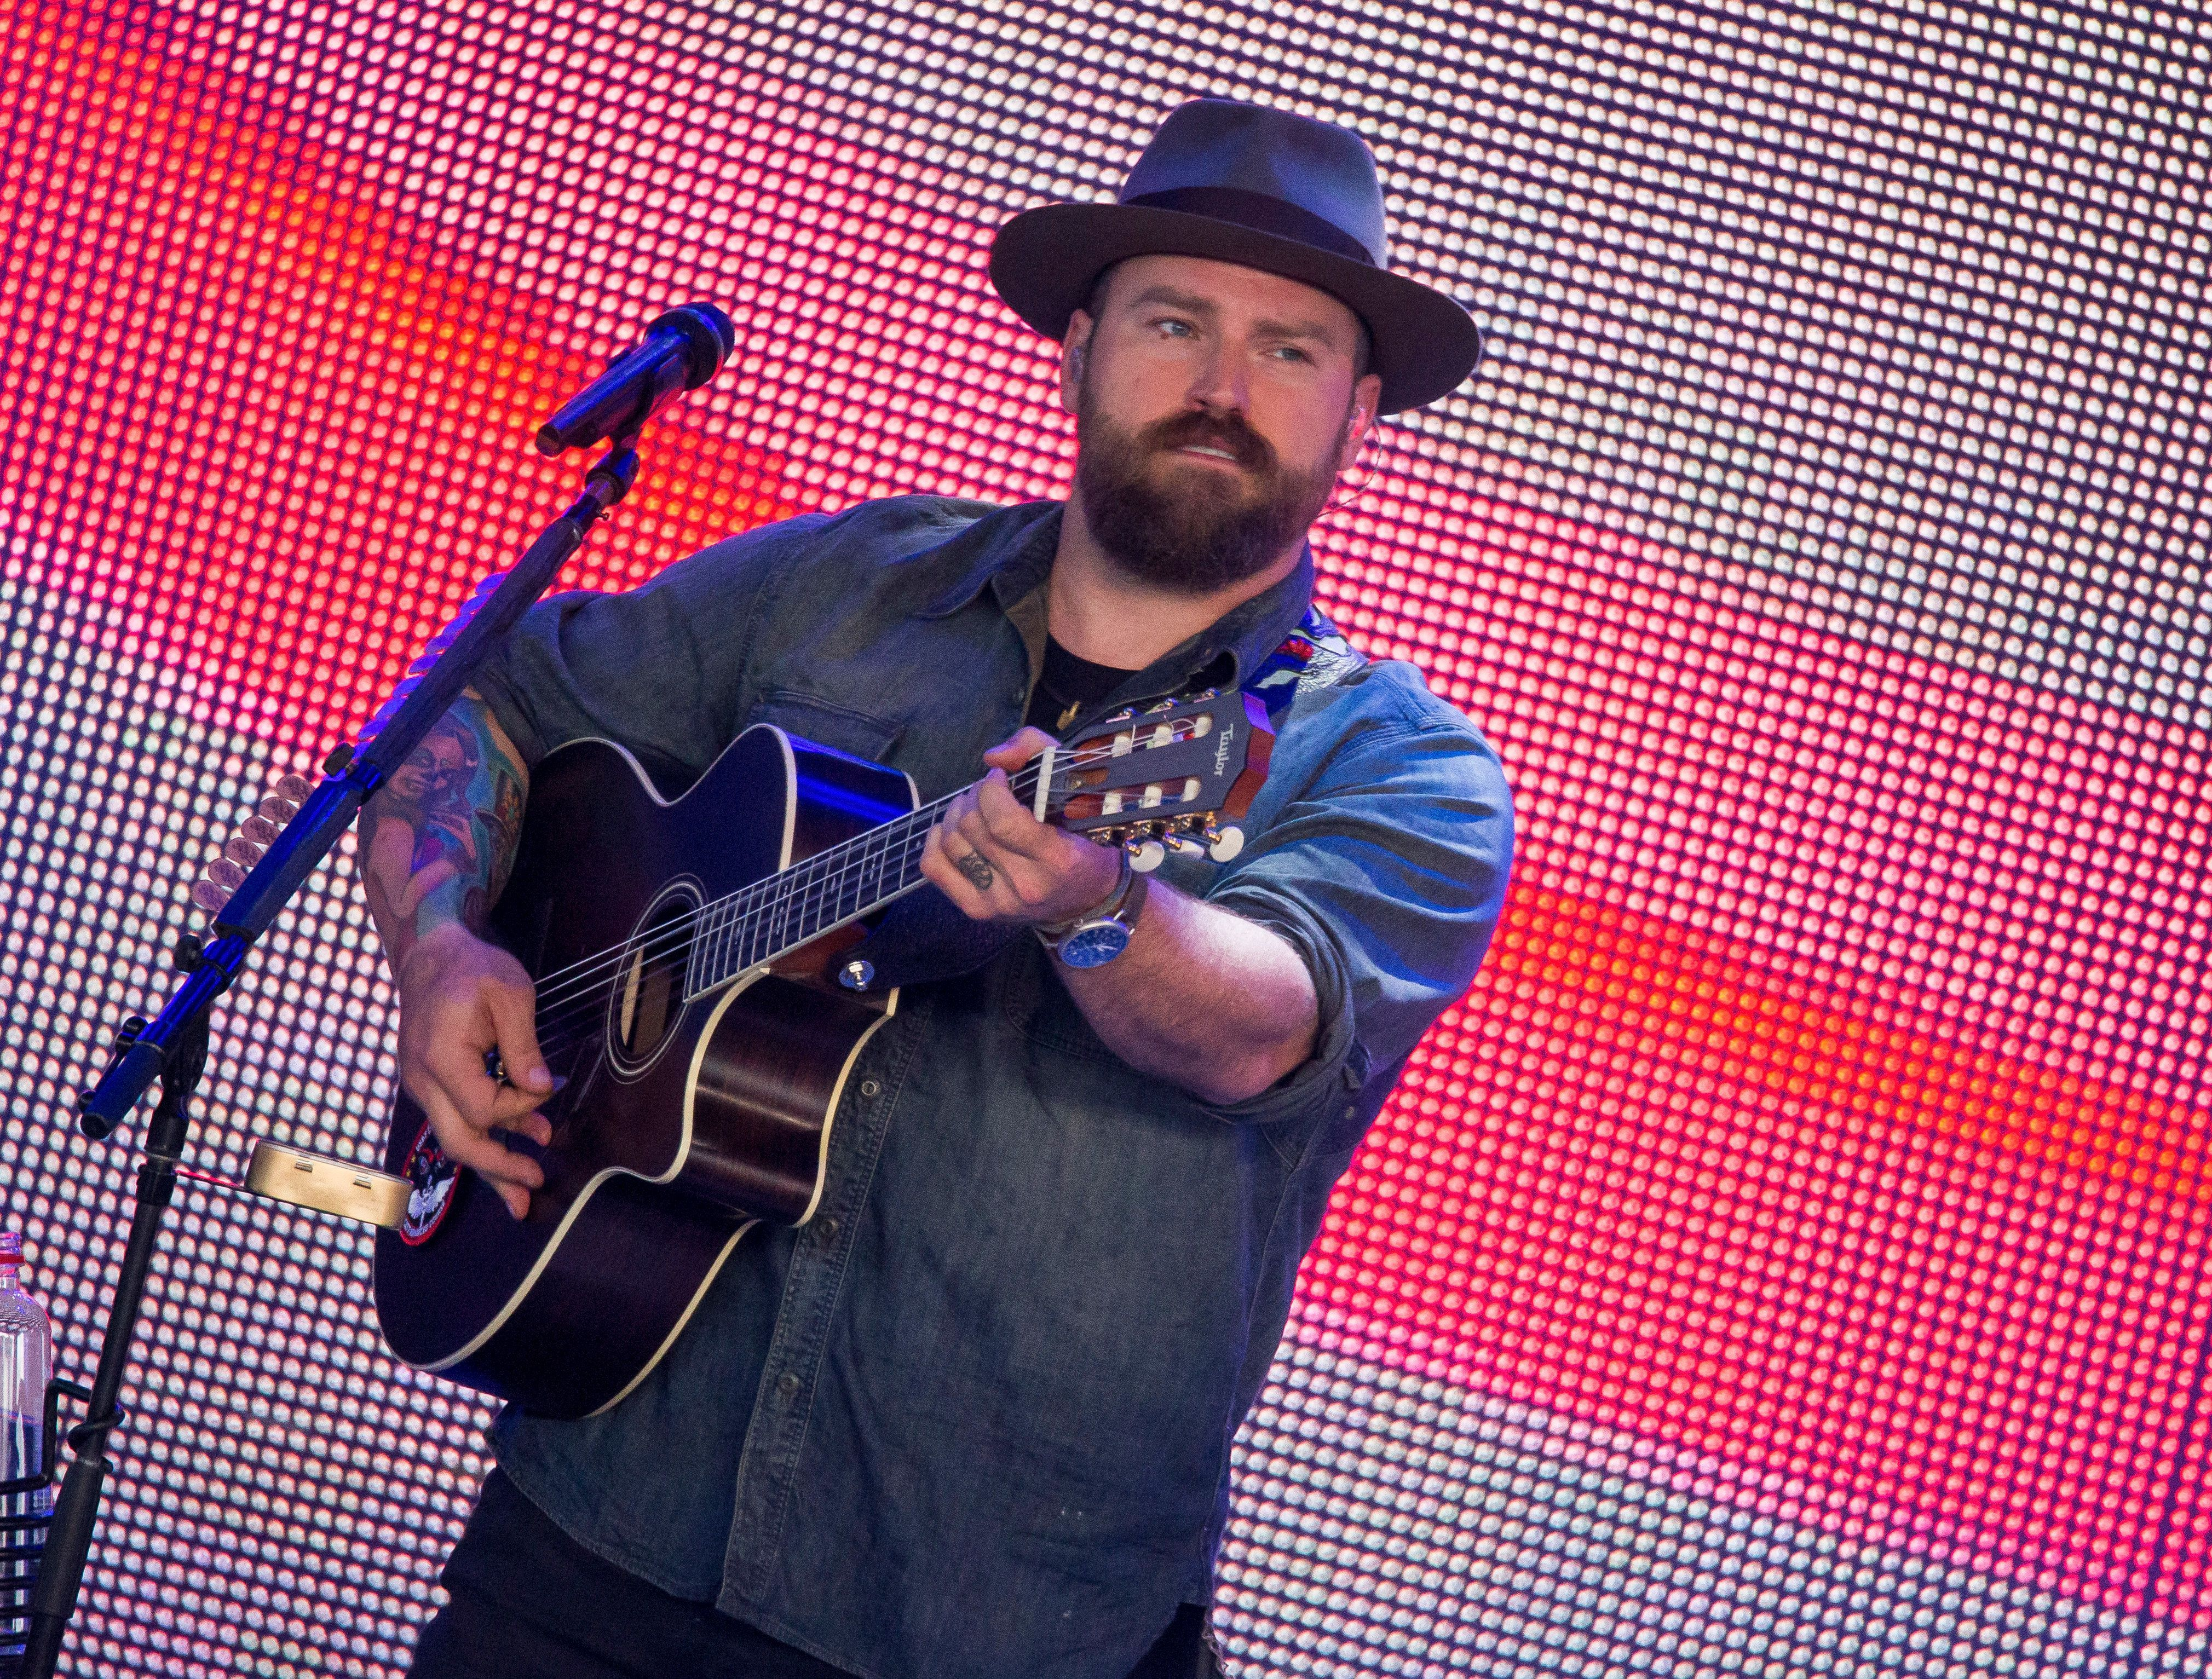 CLARKSTON, MI - JULY 02:  Zac Brown performs during the Black Out The Sun Tour at DTE Energy Music Theater on July 2, 2016 in Clarkston, Michigan.  (Photo by Scott Legato/Getty Images)